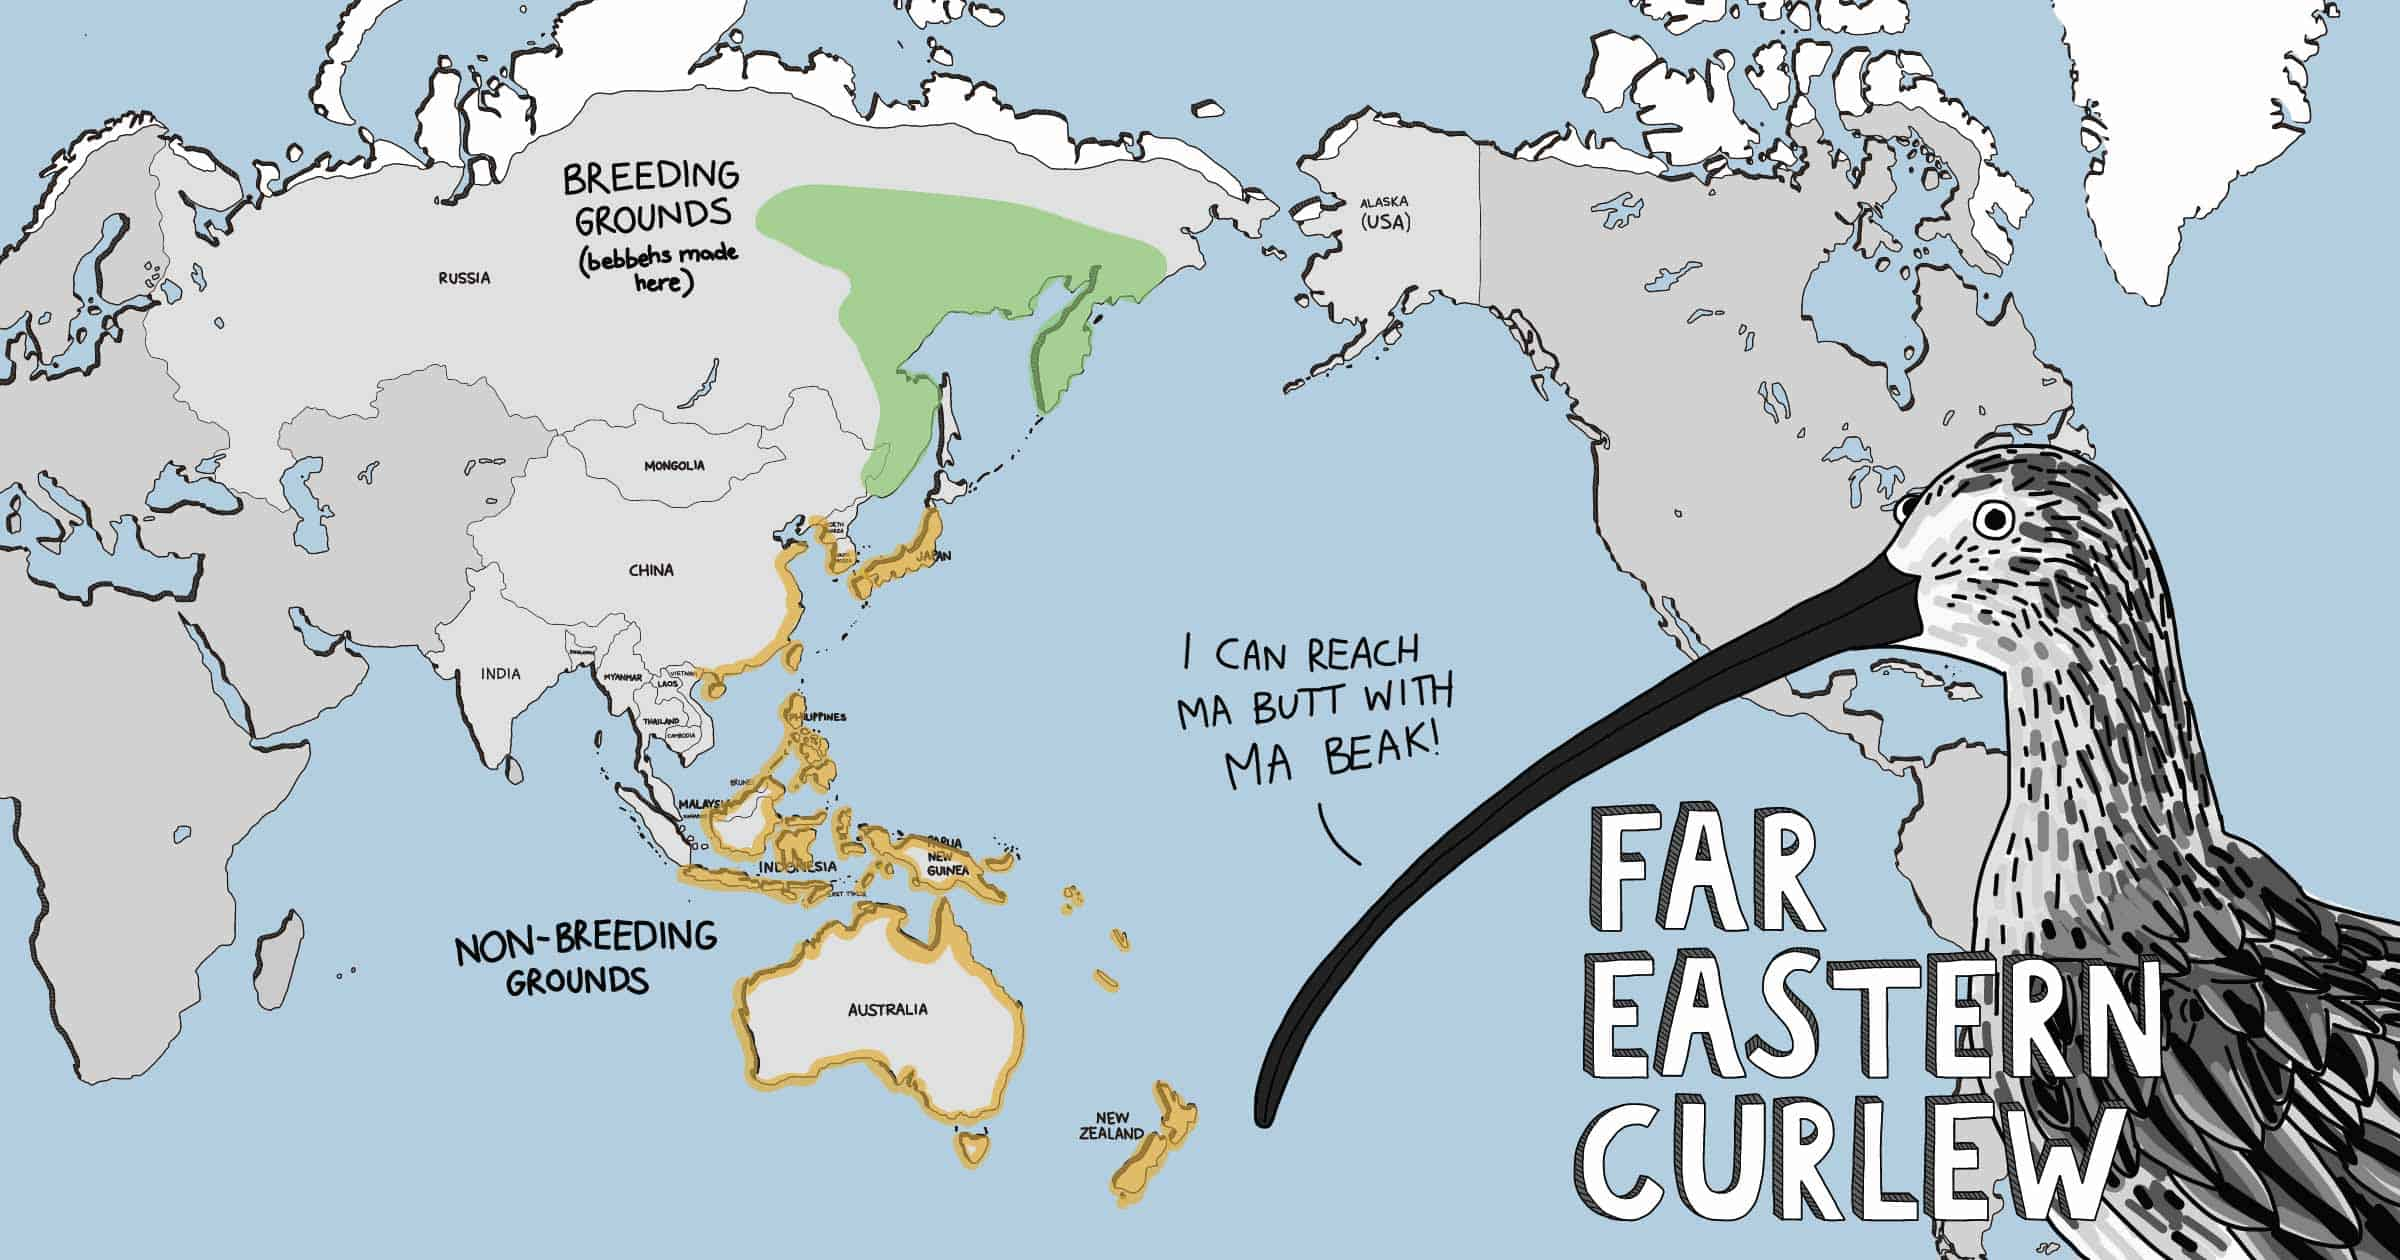 Cartoon world map showing distribution of the Far Eastern Curlew